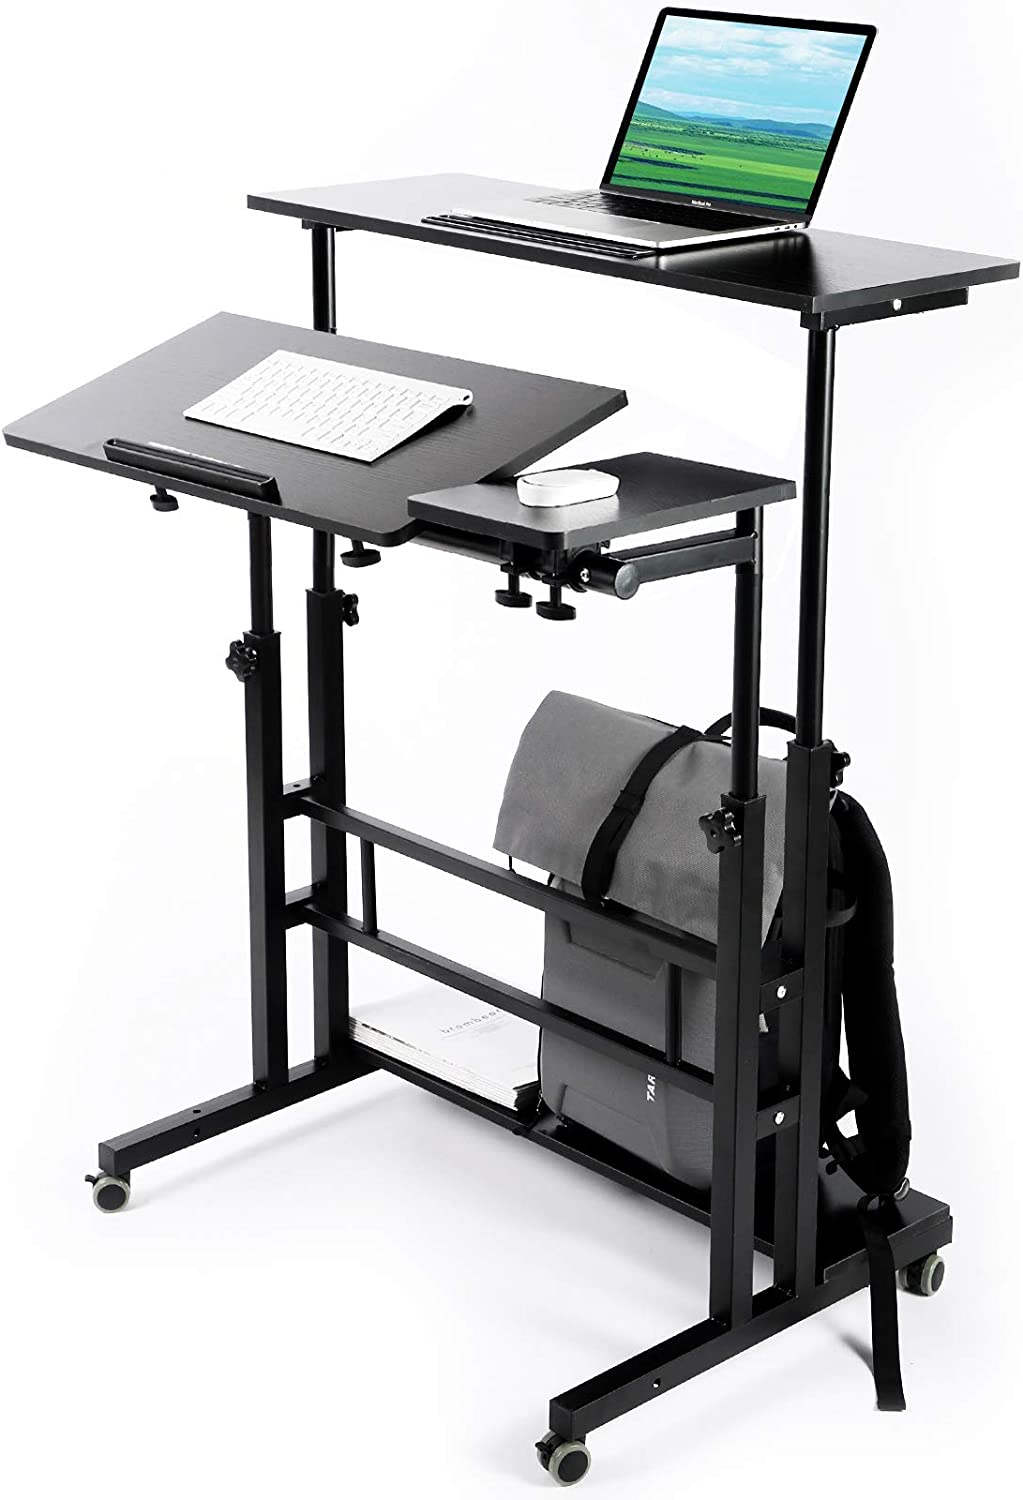 Zytty Portable Standing Desk, Small Standing Desk with Wheels Standing Laptop Desk Mobile Standing Desk for Home Office Adjustable Standing Desk, Stand Up Computer Desk Rolling Laptop Cart, Black